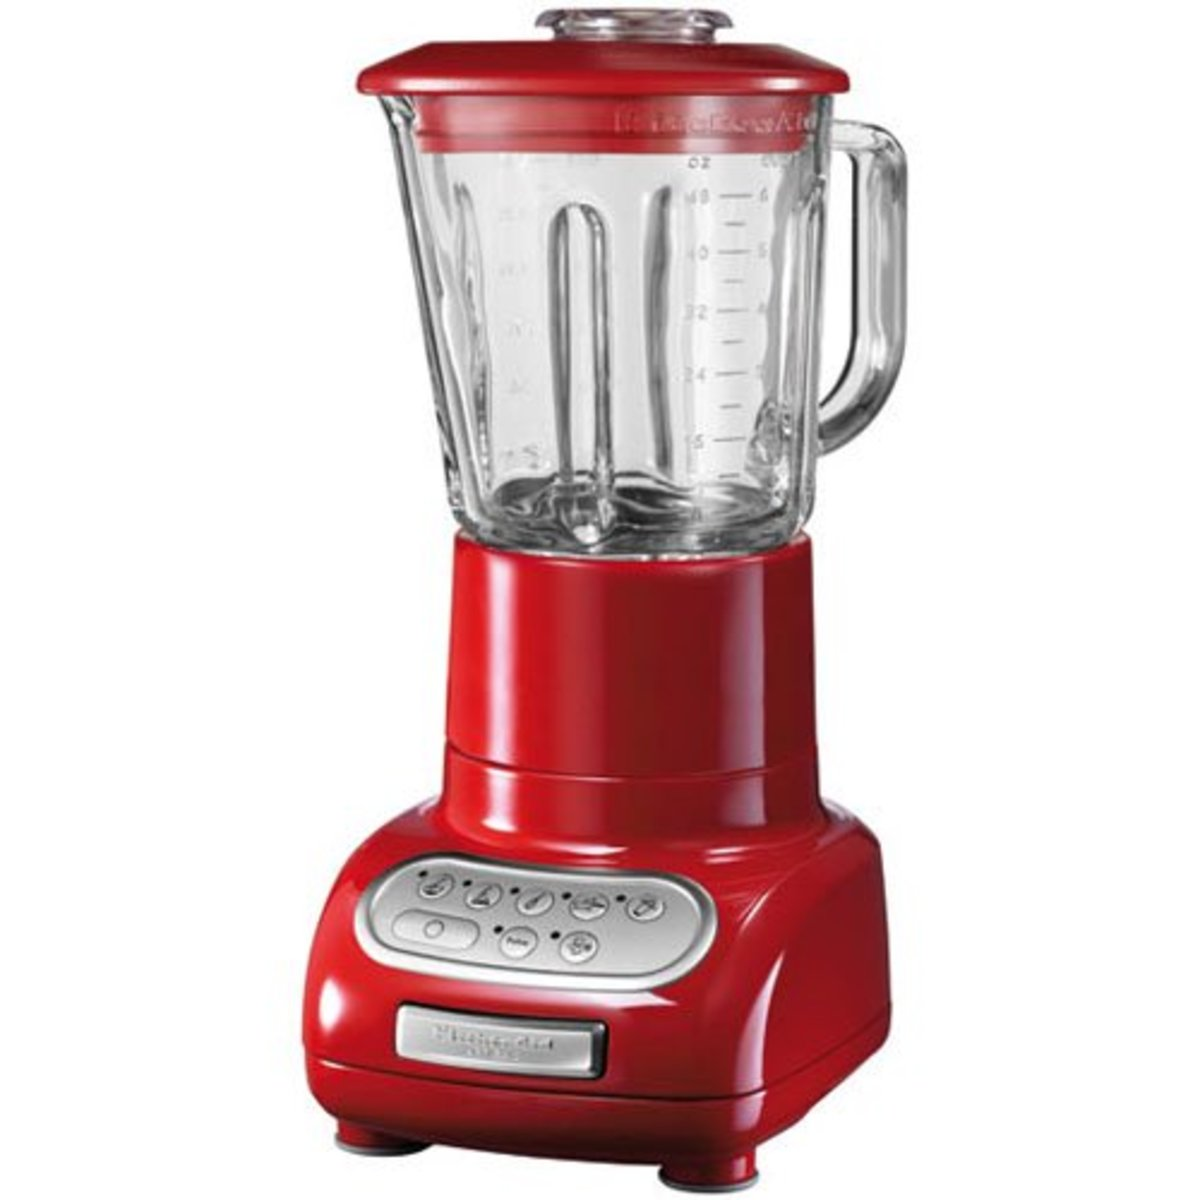 Kitchenaid Blender, Red